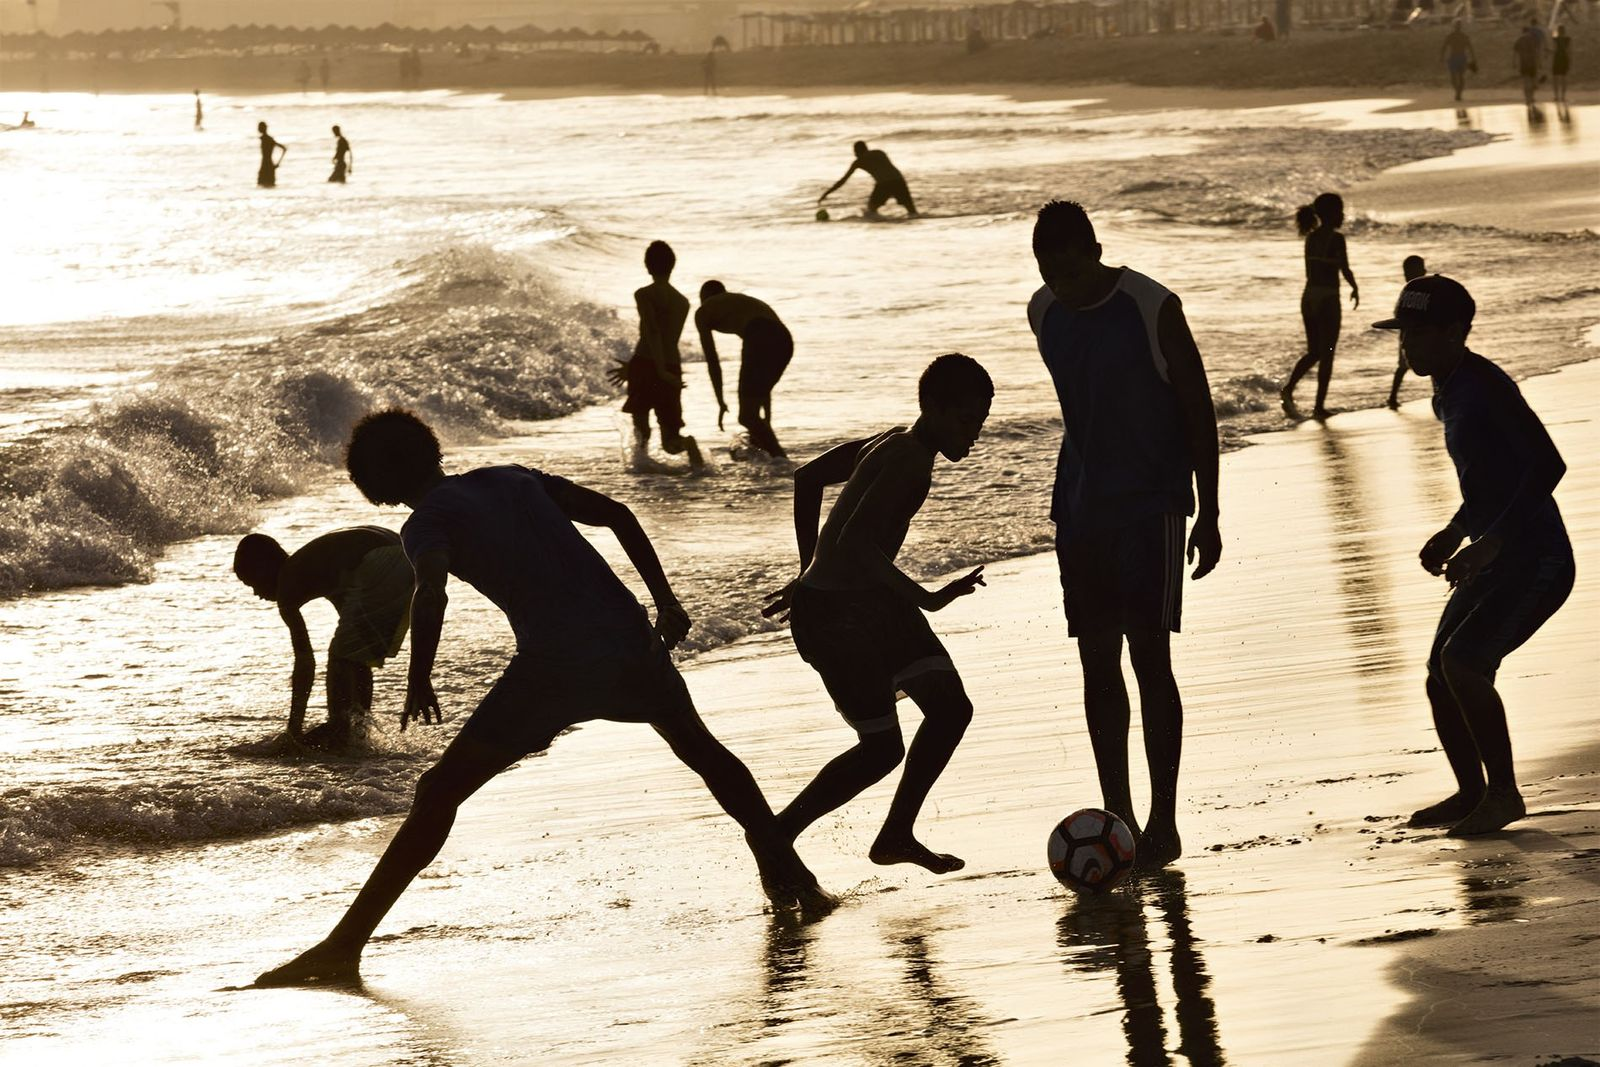 Playing football in the waves.